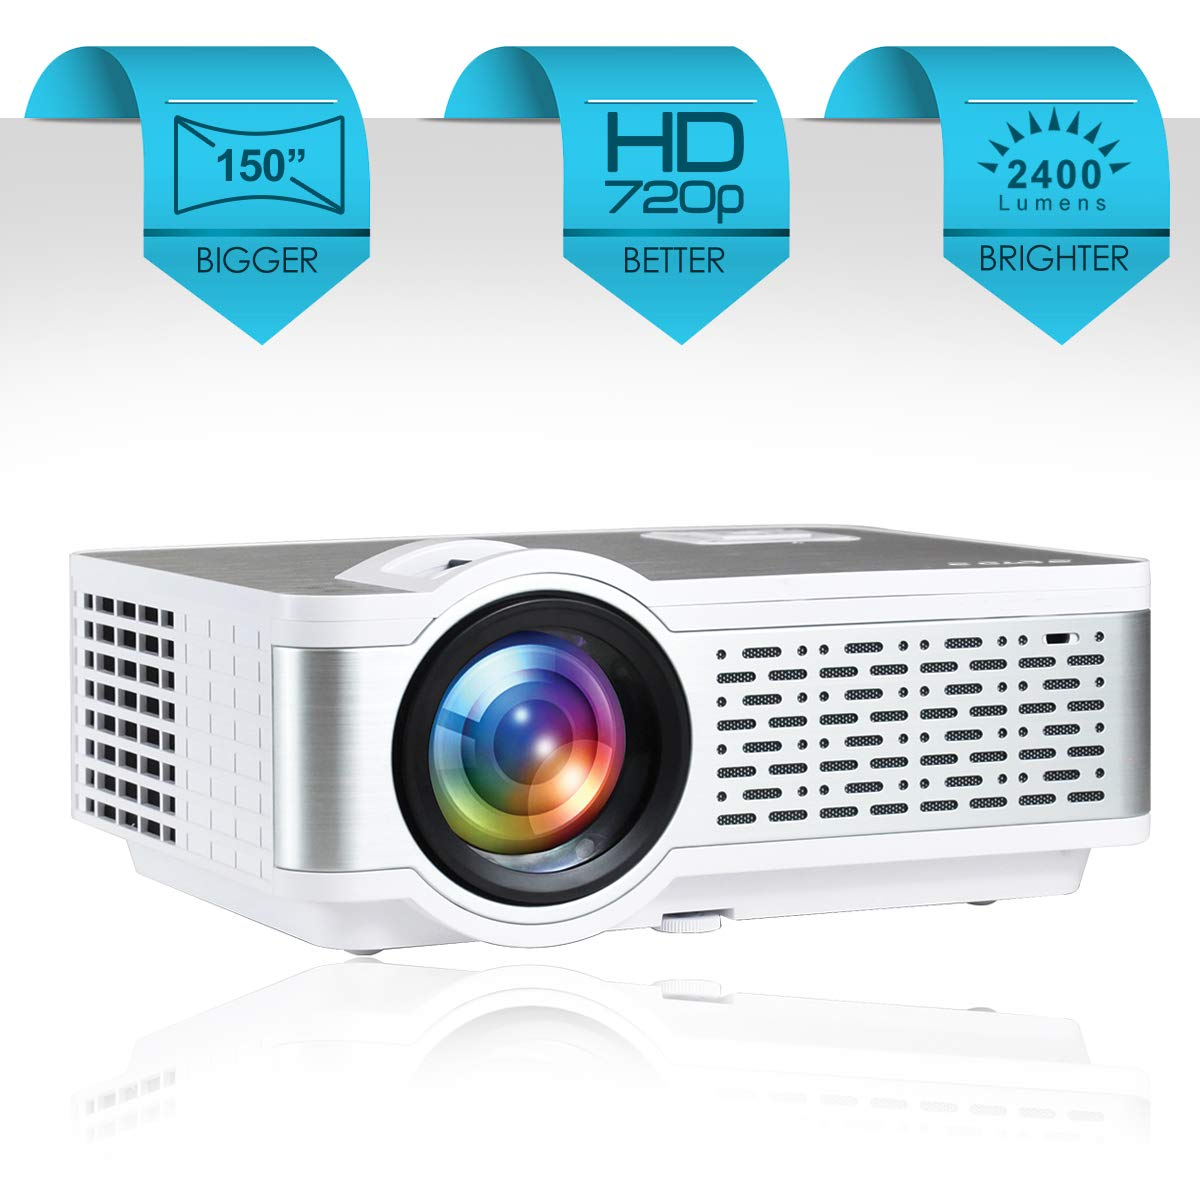 Egate I9 Real HD 720p (1080p Support) LED Projector